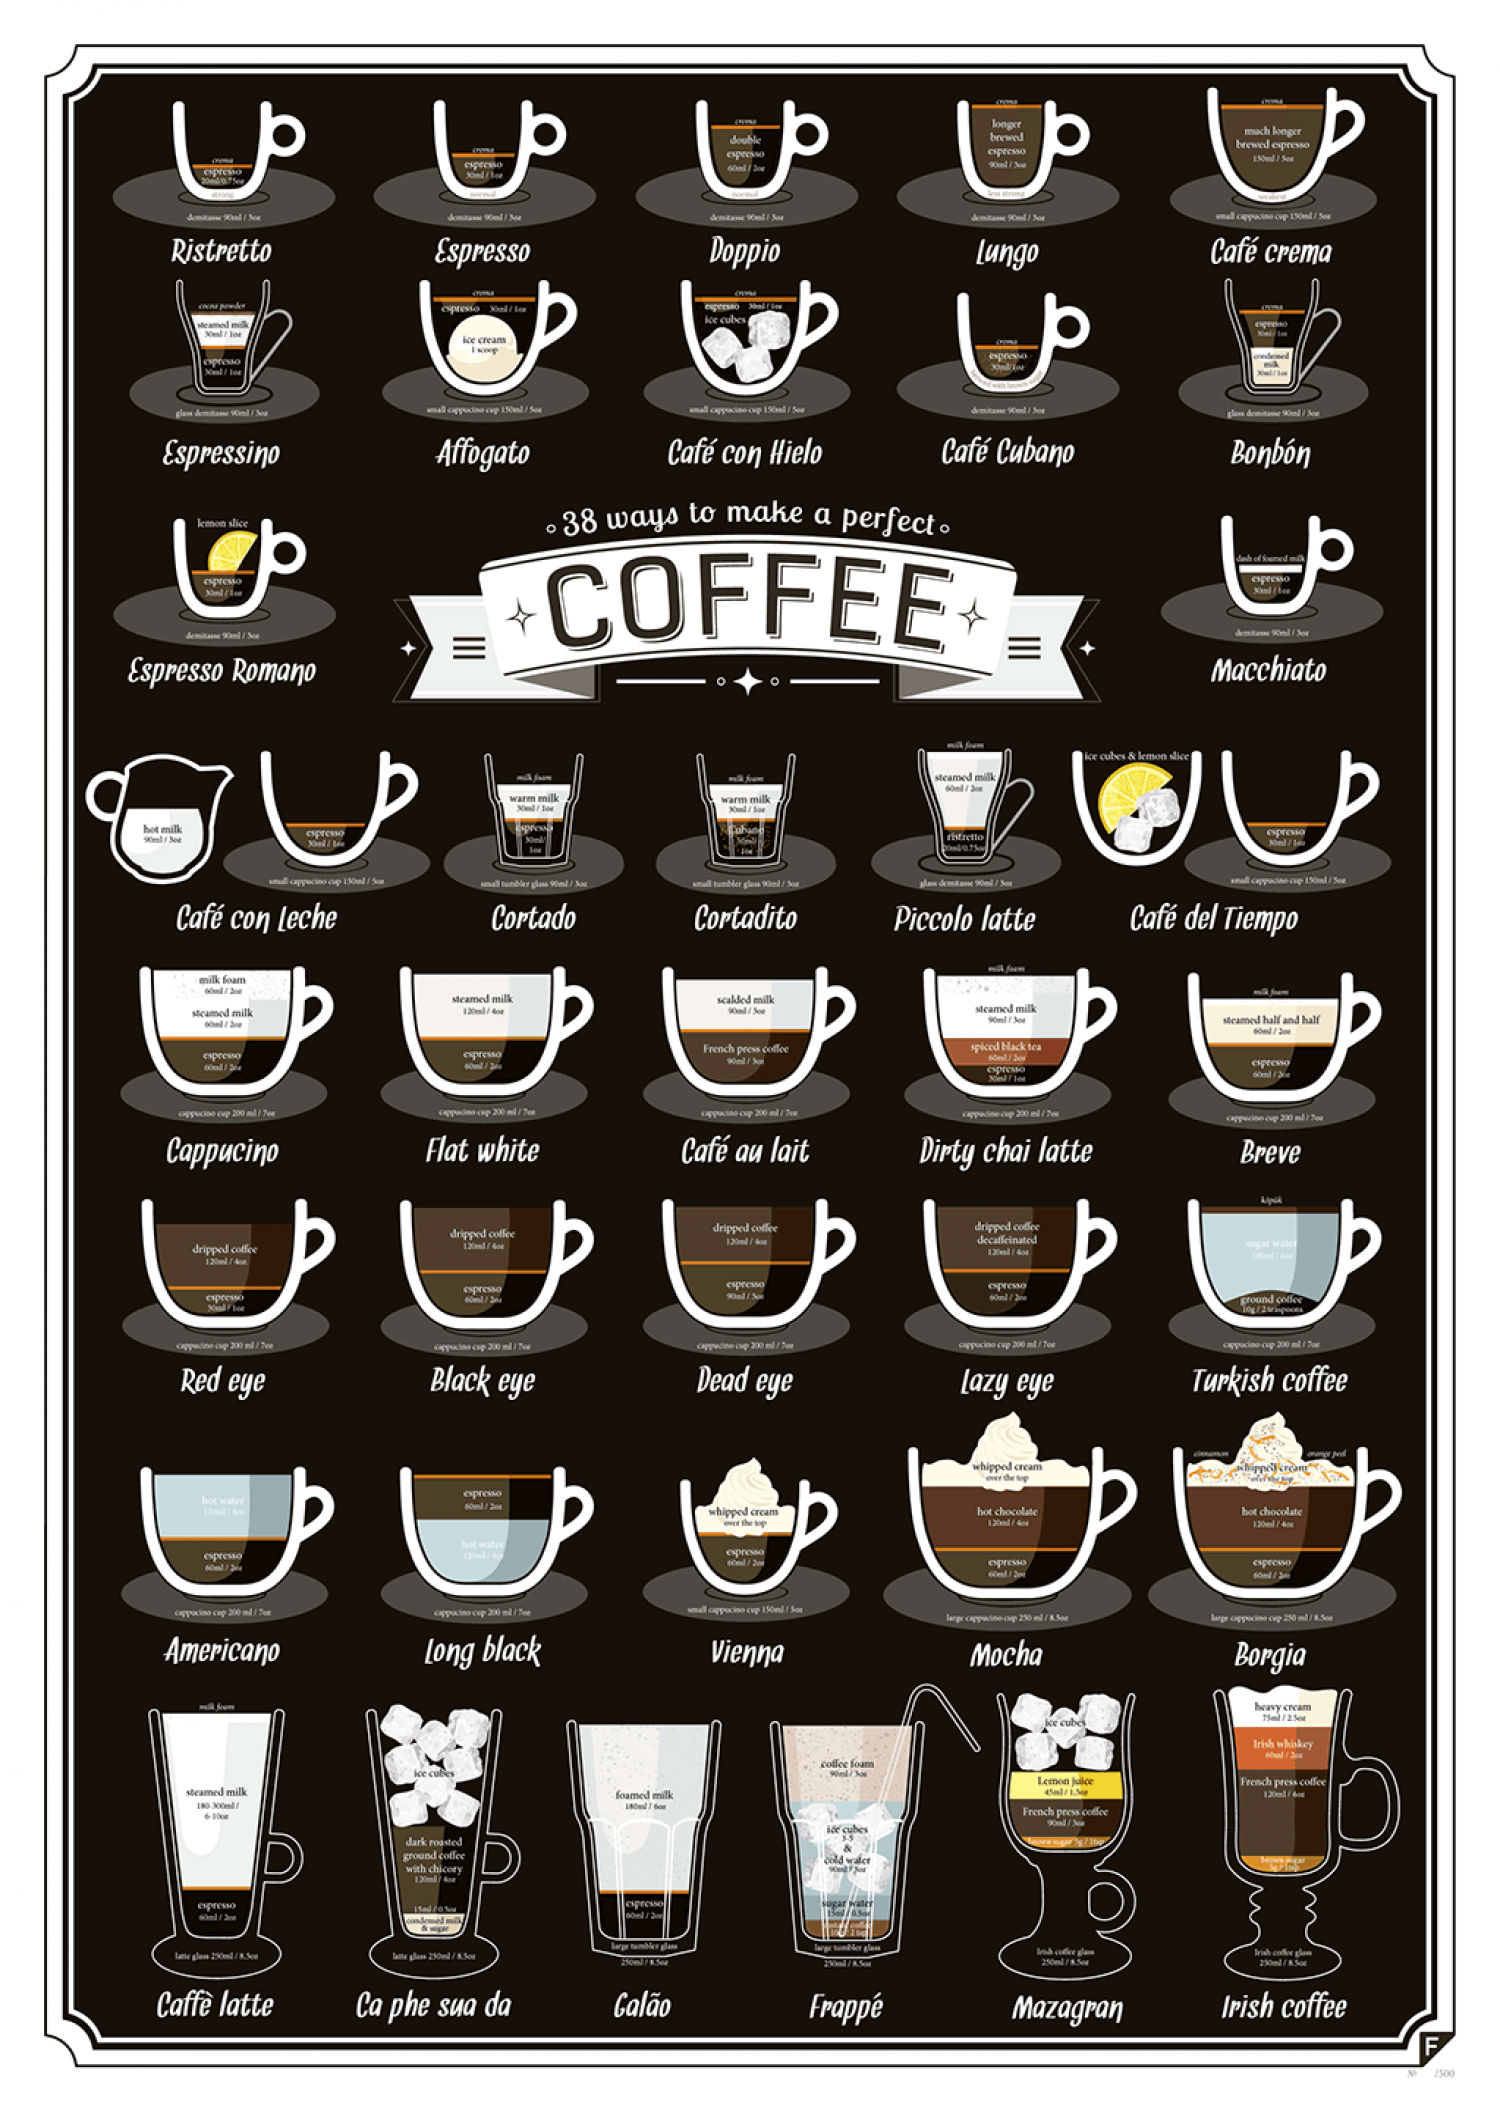 38 ways to make a perfect coffee How to make coffee with a coffee maker